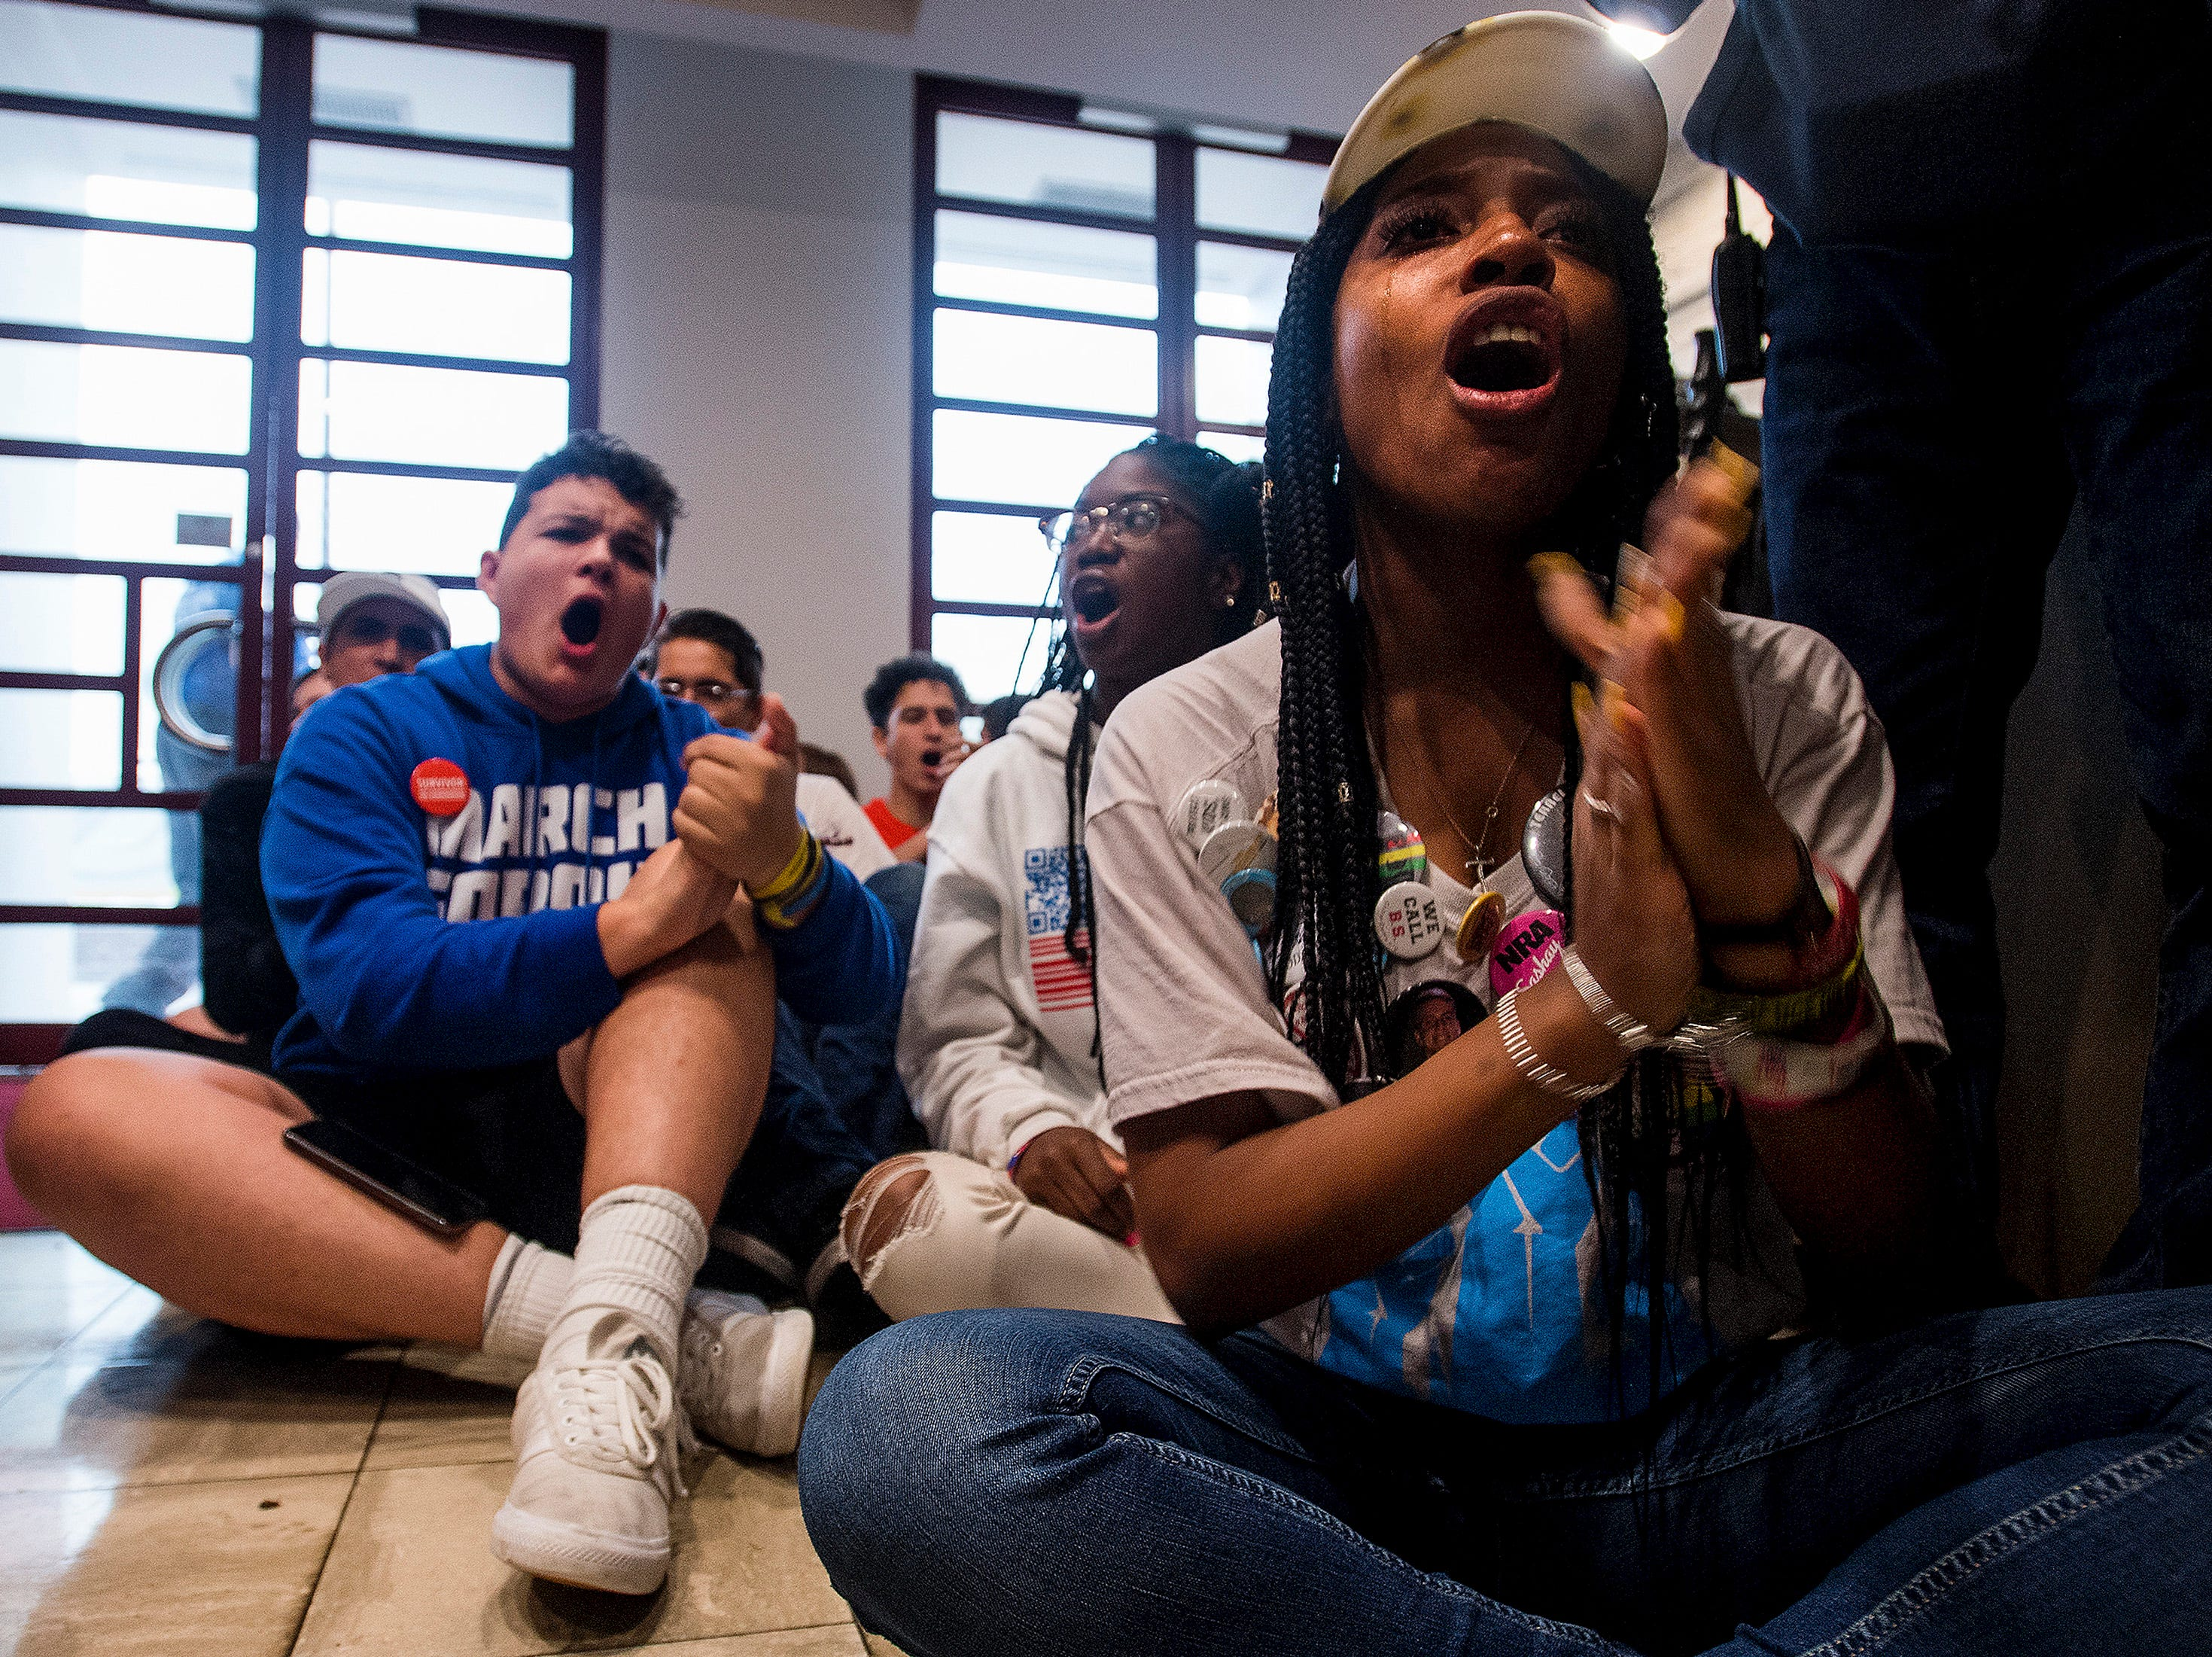 Survivors from the Parkland School shooting and gun violence protestors hold a sit in at the Alabama Statehouse in Montgomery, Ala. on Wednesday August 31, 2018 after not being allowed further into the building during their Road to Change Tour.